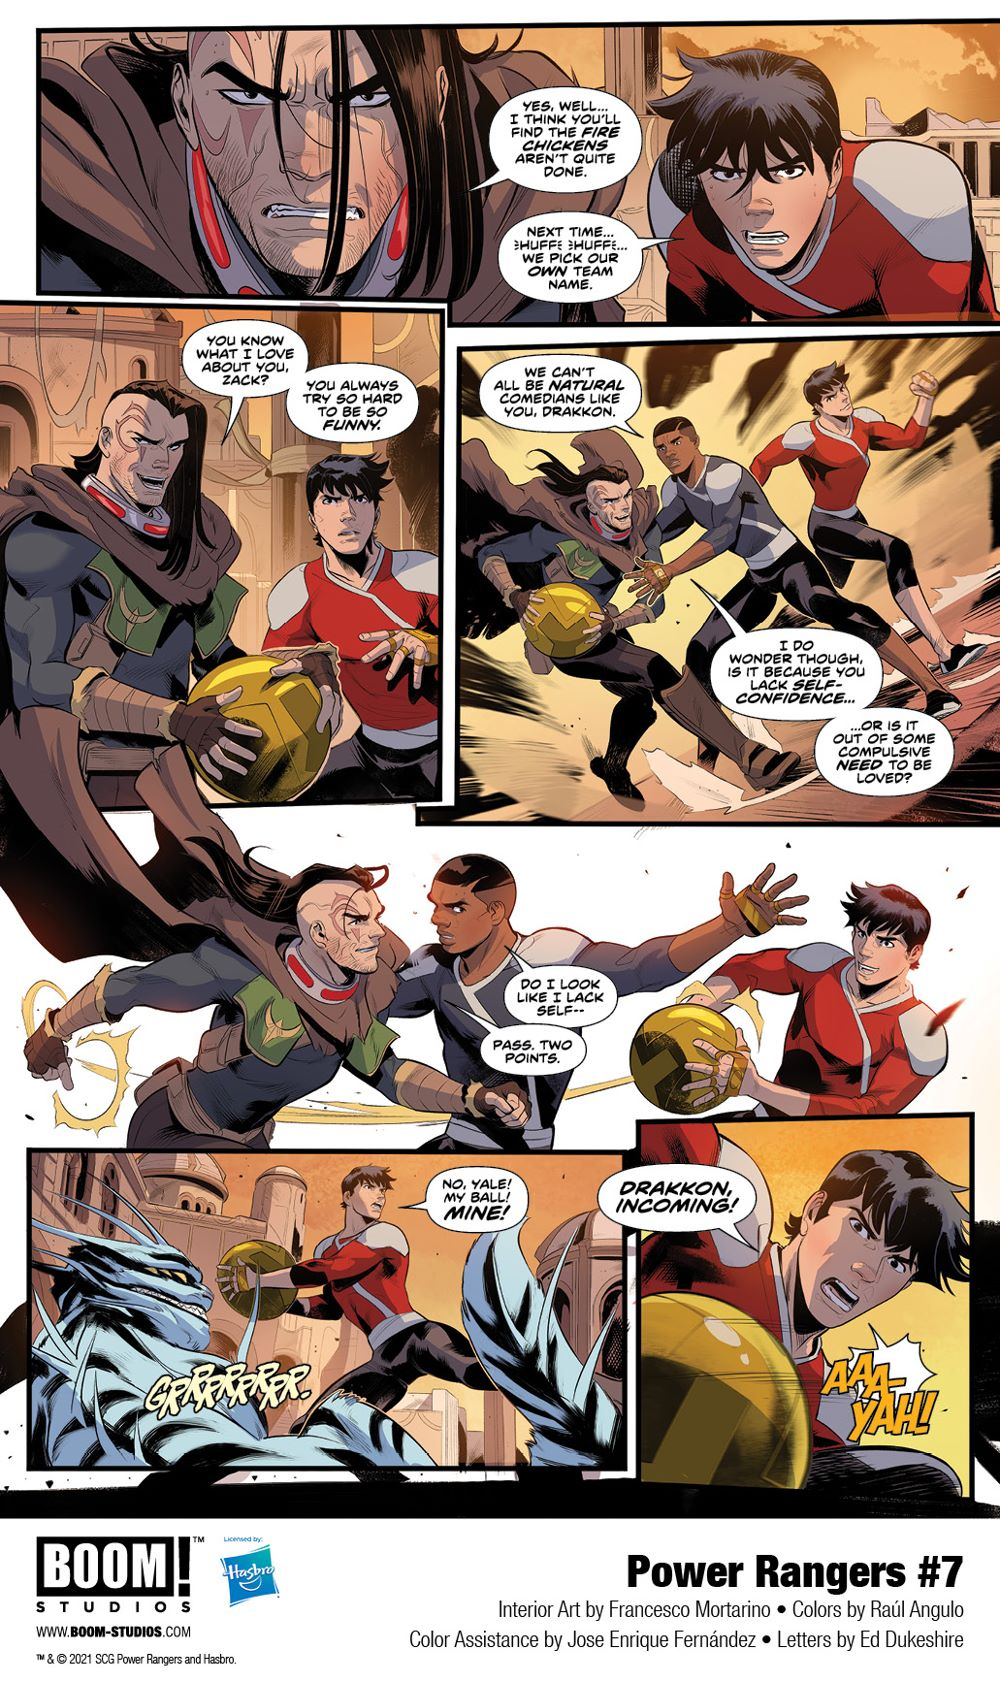 PowerRangers_007_Interiors_002_PROMO First Look at POWER RANGERS #7 by BOOM! Studios